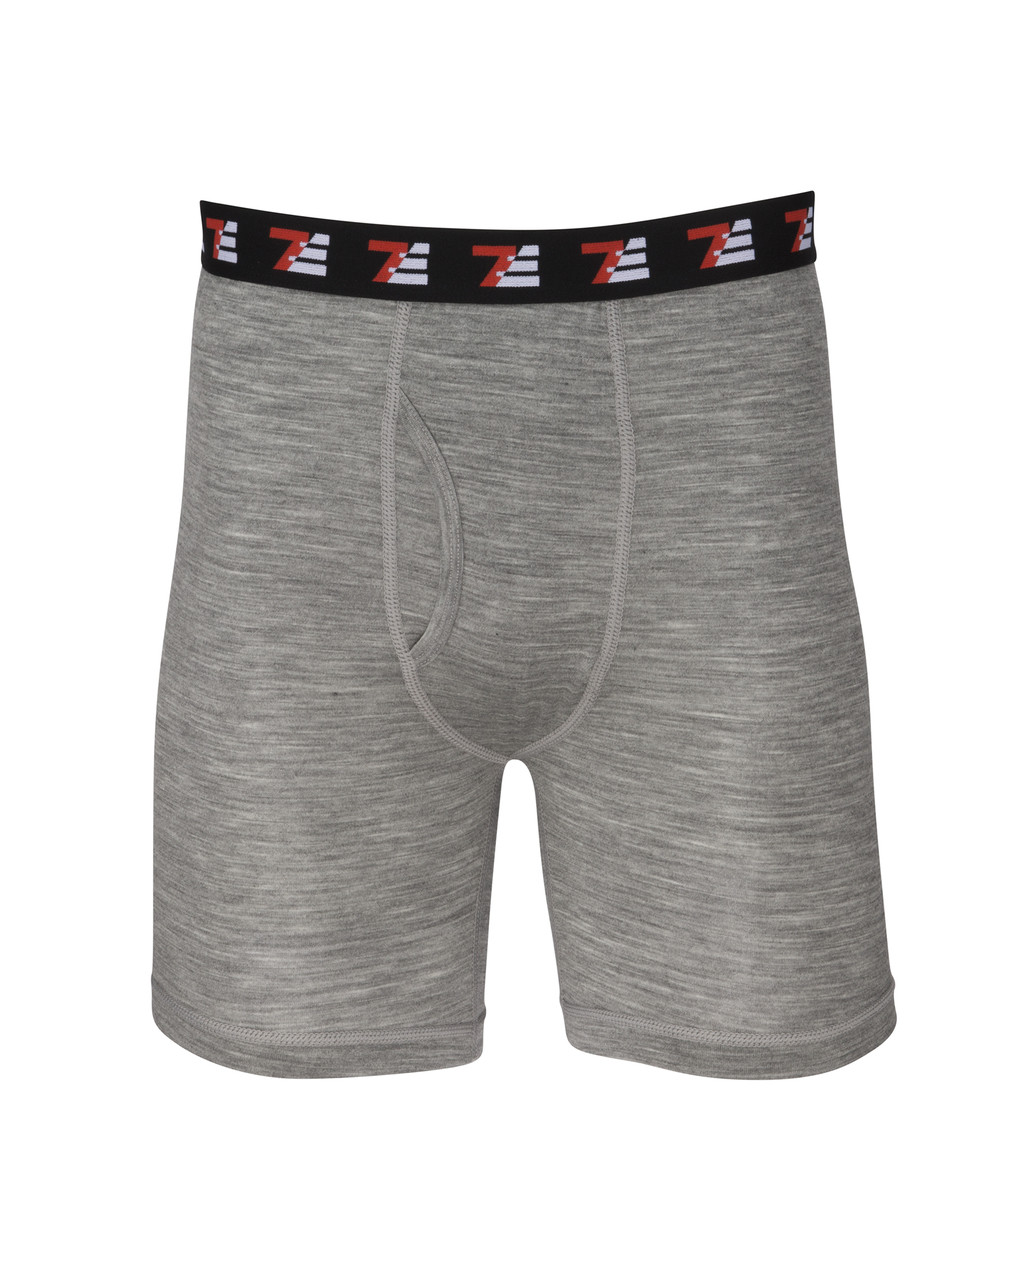 8fba01ae9a33 7EVEN Merino Wool 190 GSM Boxer Briefs Grey